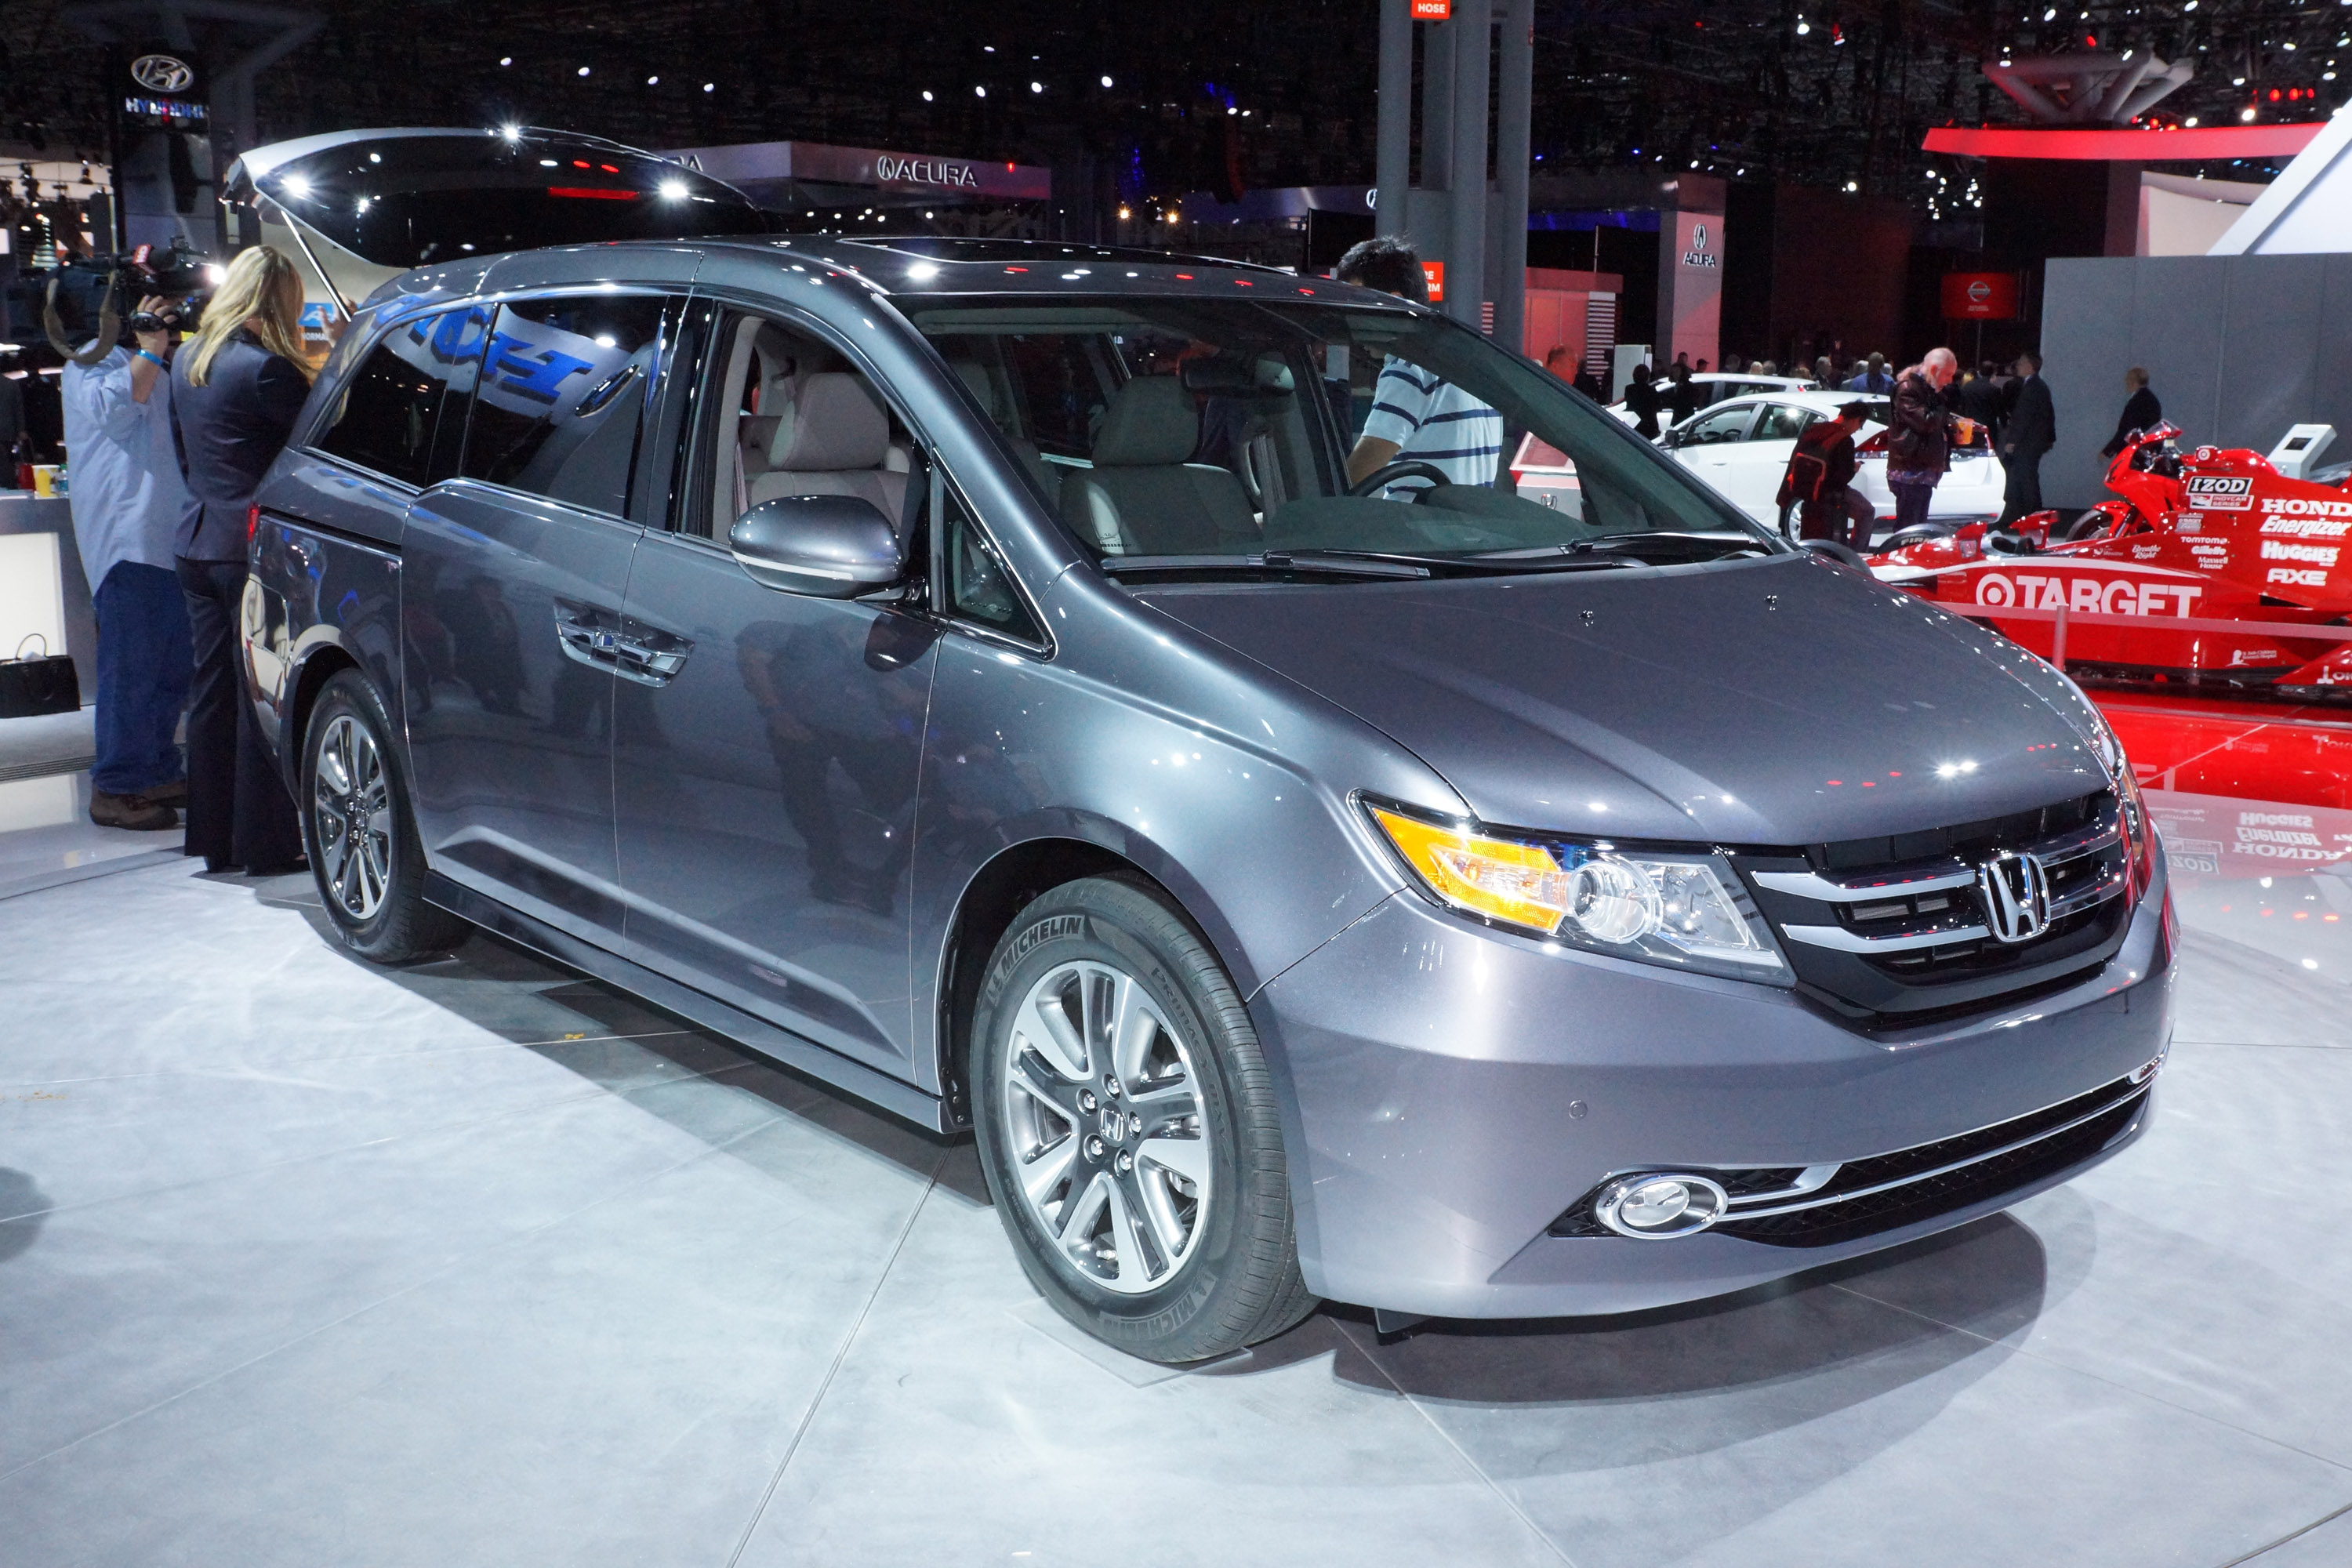 Honda Odyssey Touring Elite New York 2013 - Picture 83720